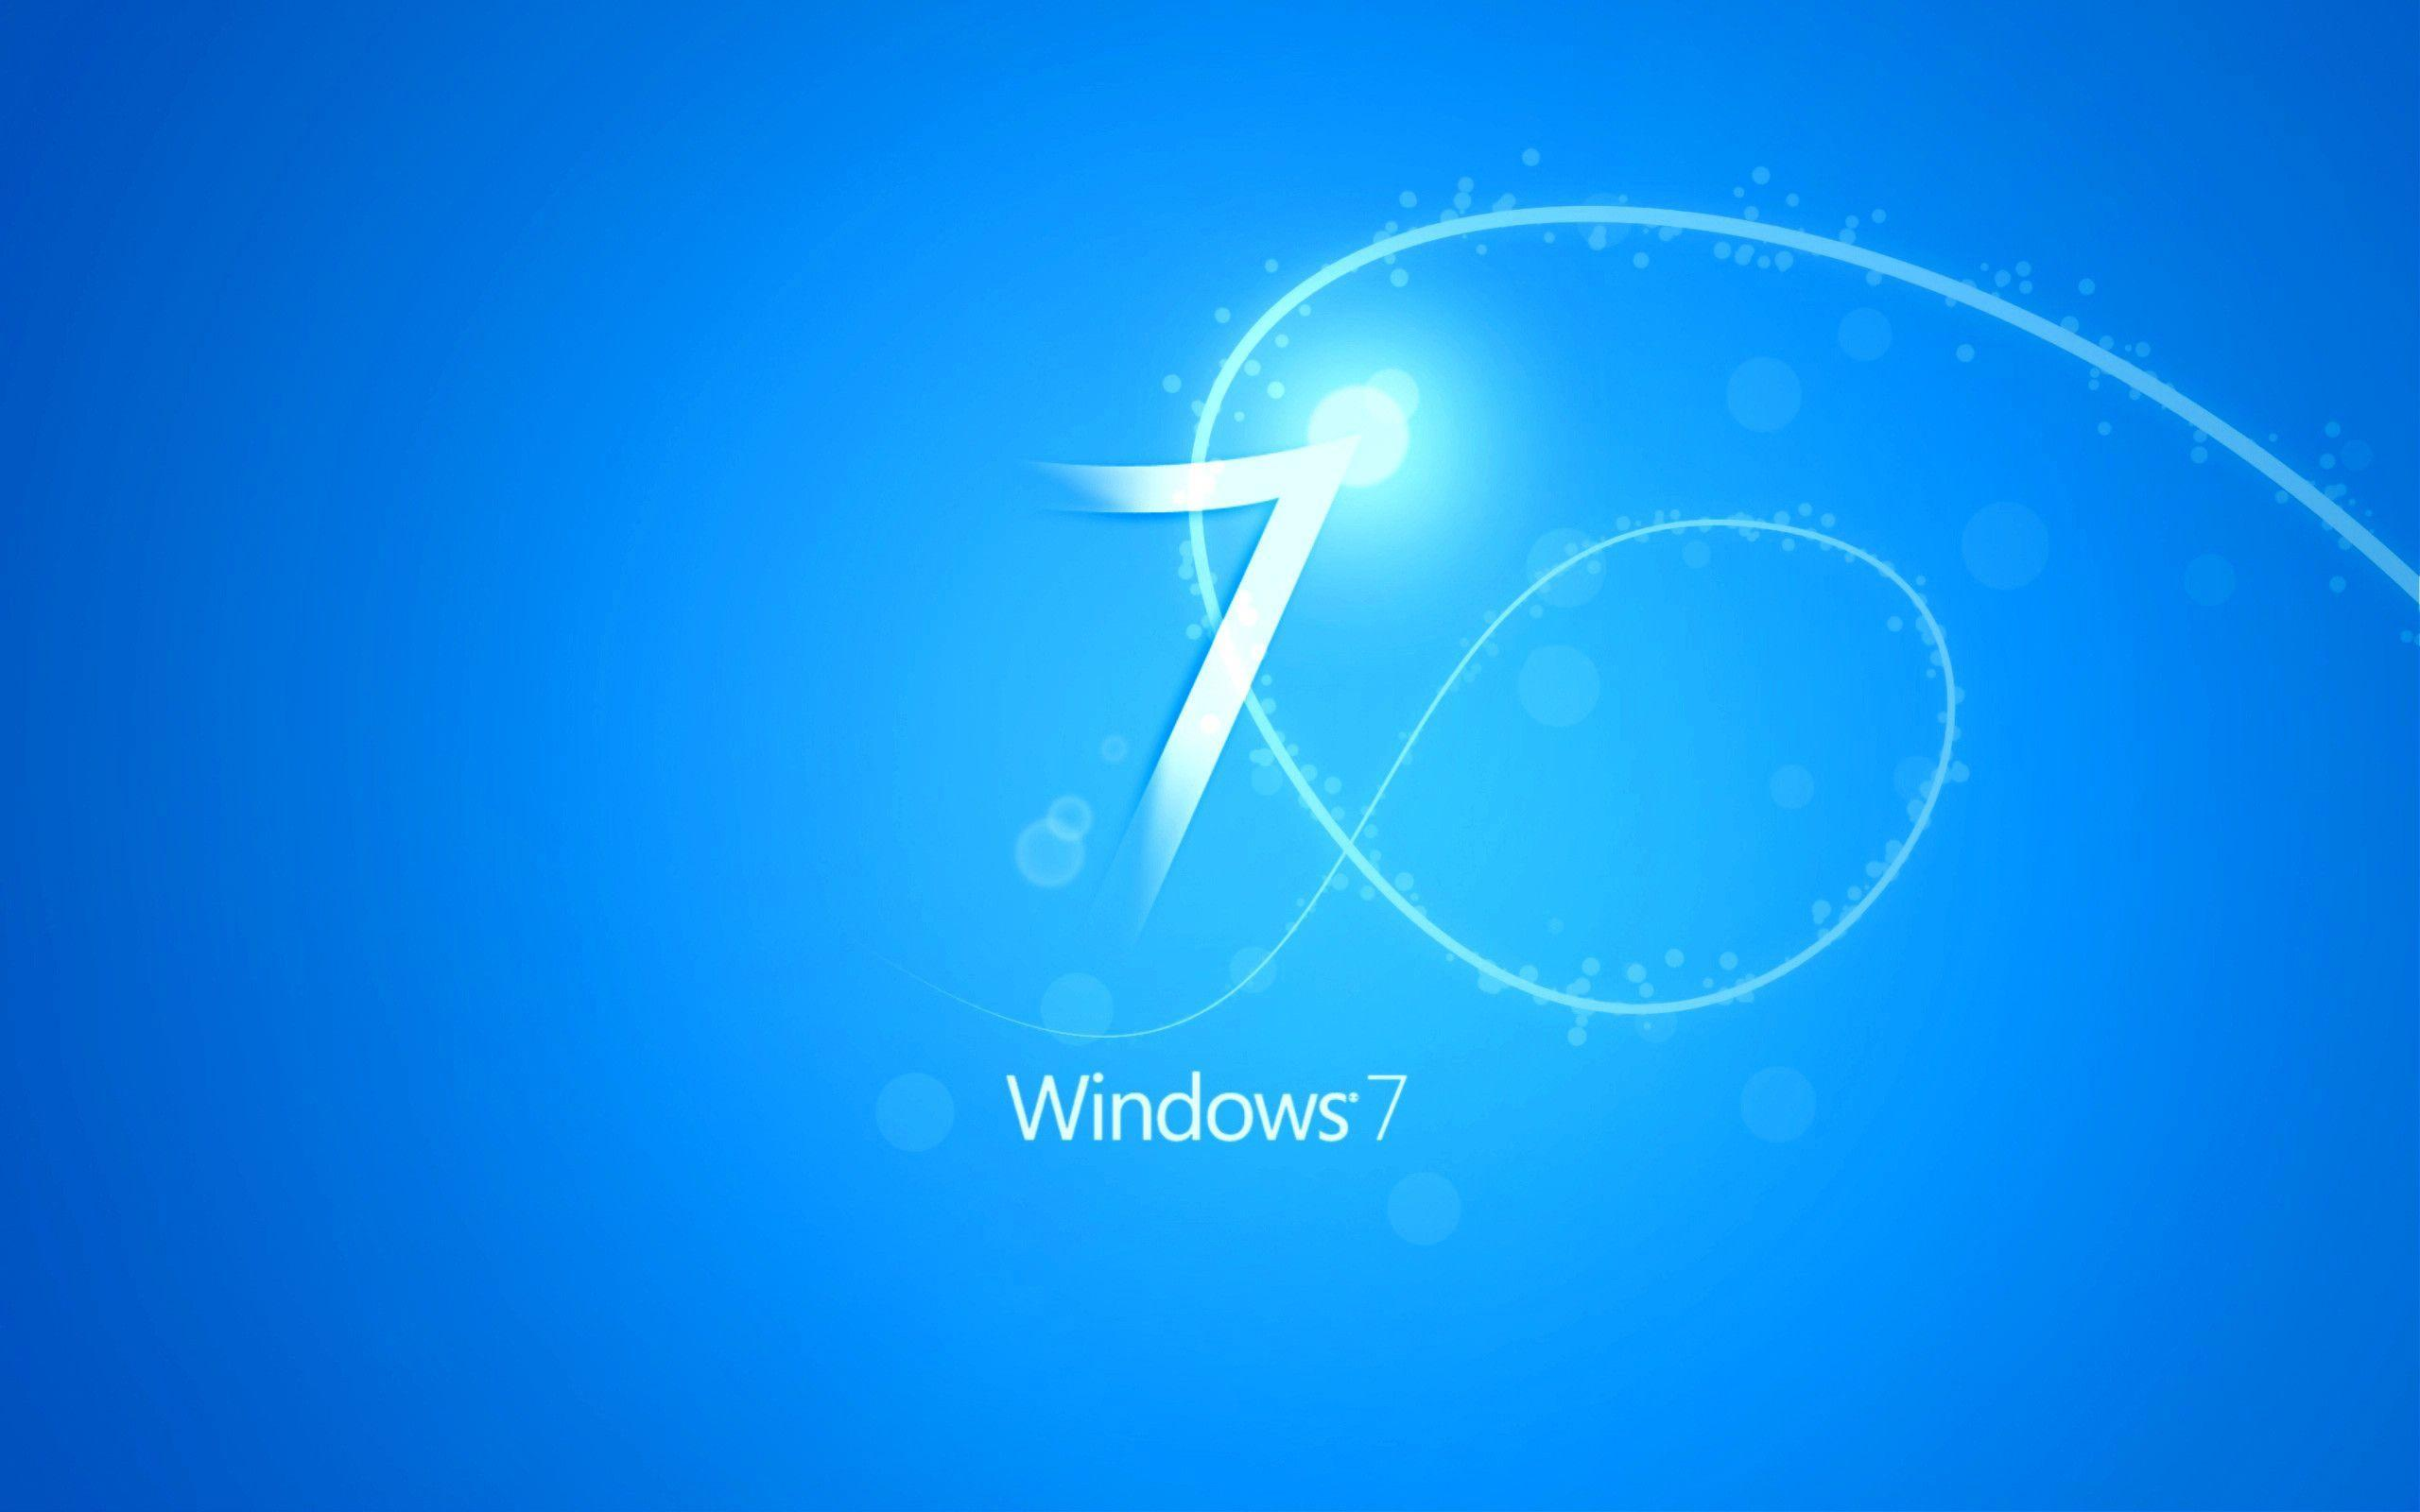 Blue Windows 7 Wallpapers | HD Wallpapers